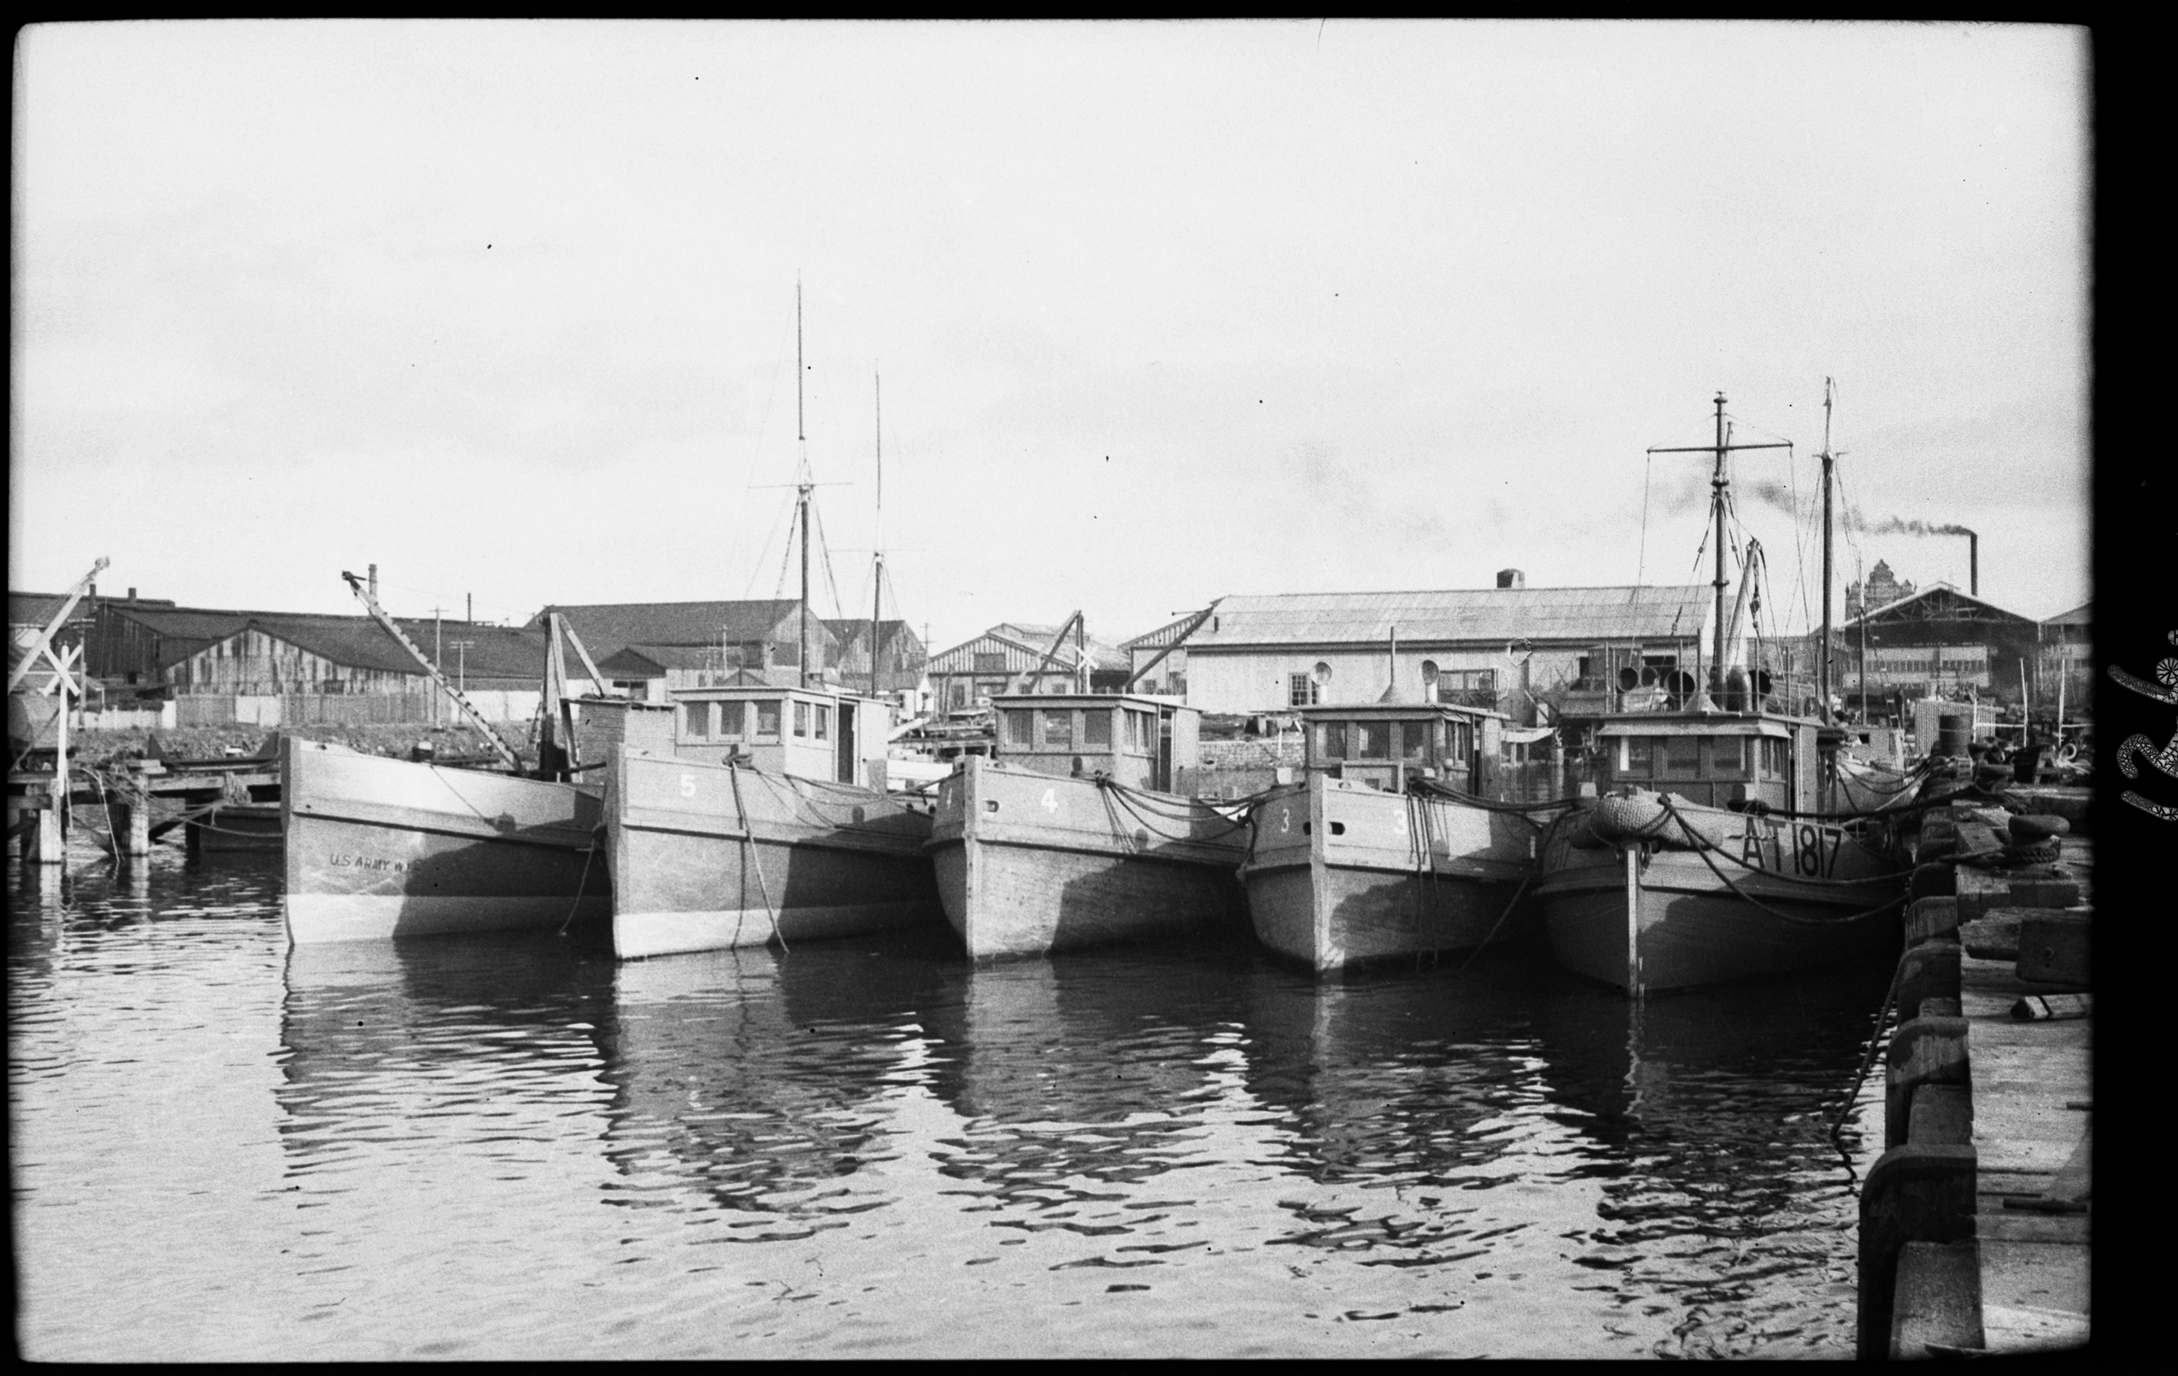 black and white photo of boats docked